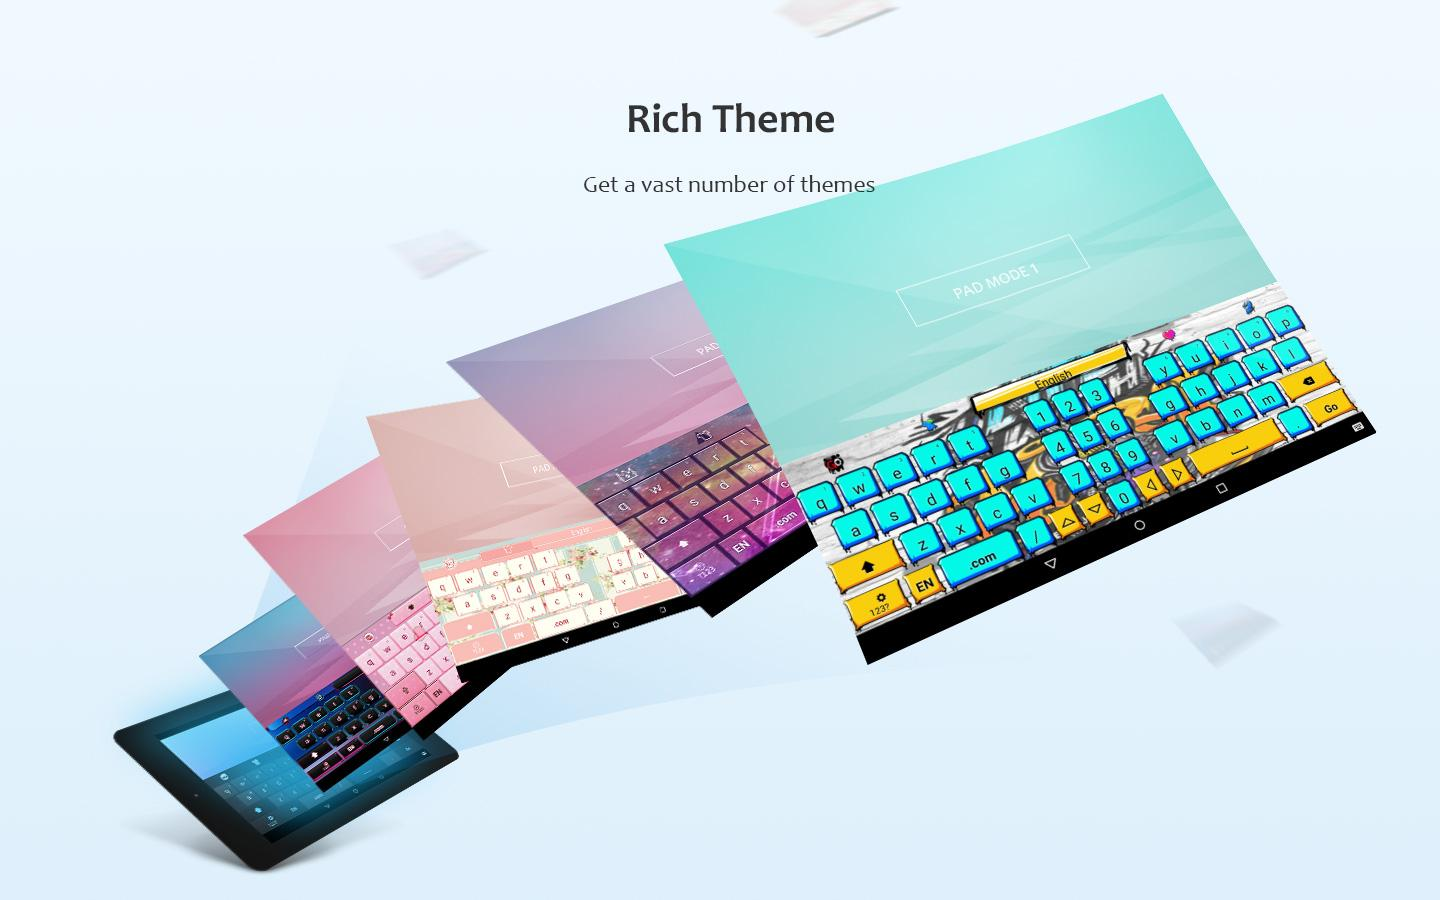 GO Keyboard   Emoji Wallpaper   Android Apps on Google Play 1440x900